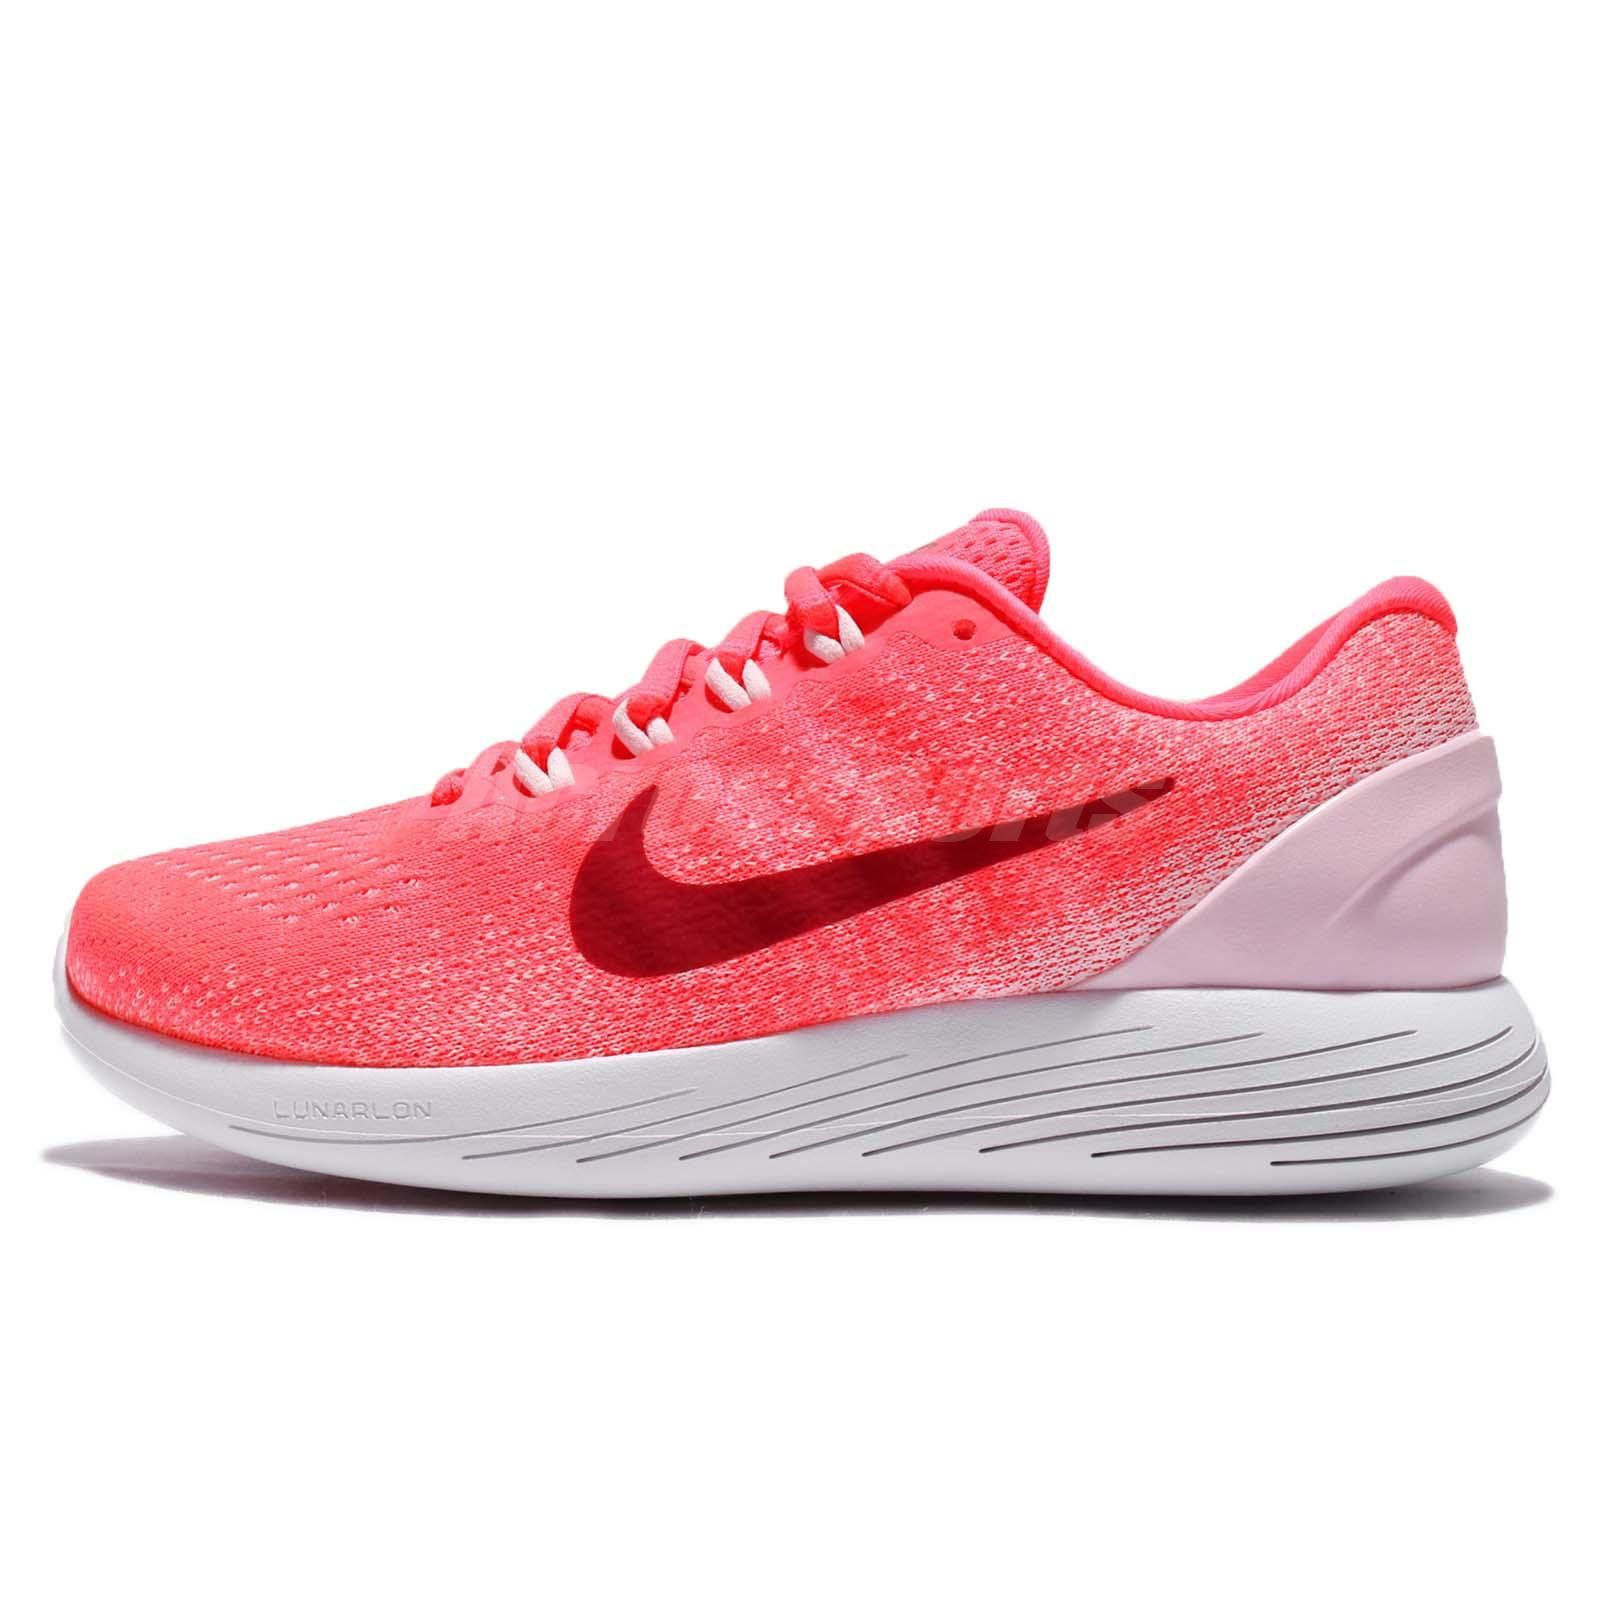 NIKE Lunarglide 9 904716 601 Punch/Noble Red Women Running Athletic Shoe Sz 7.5M